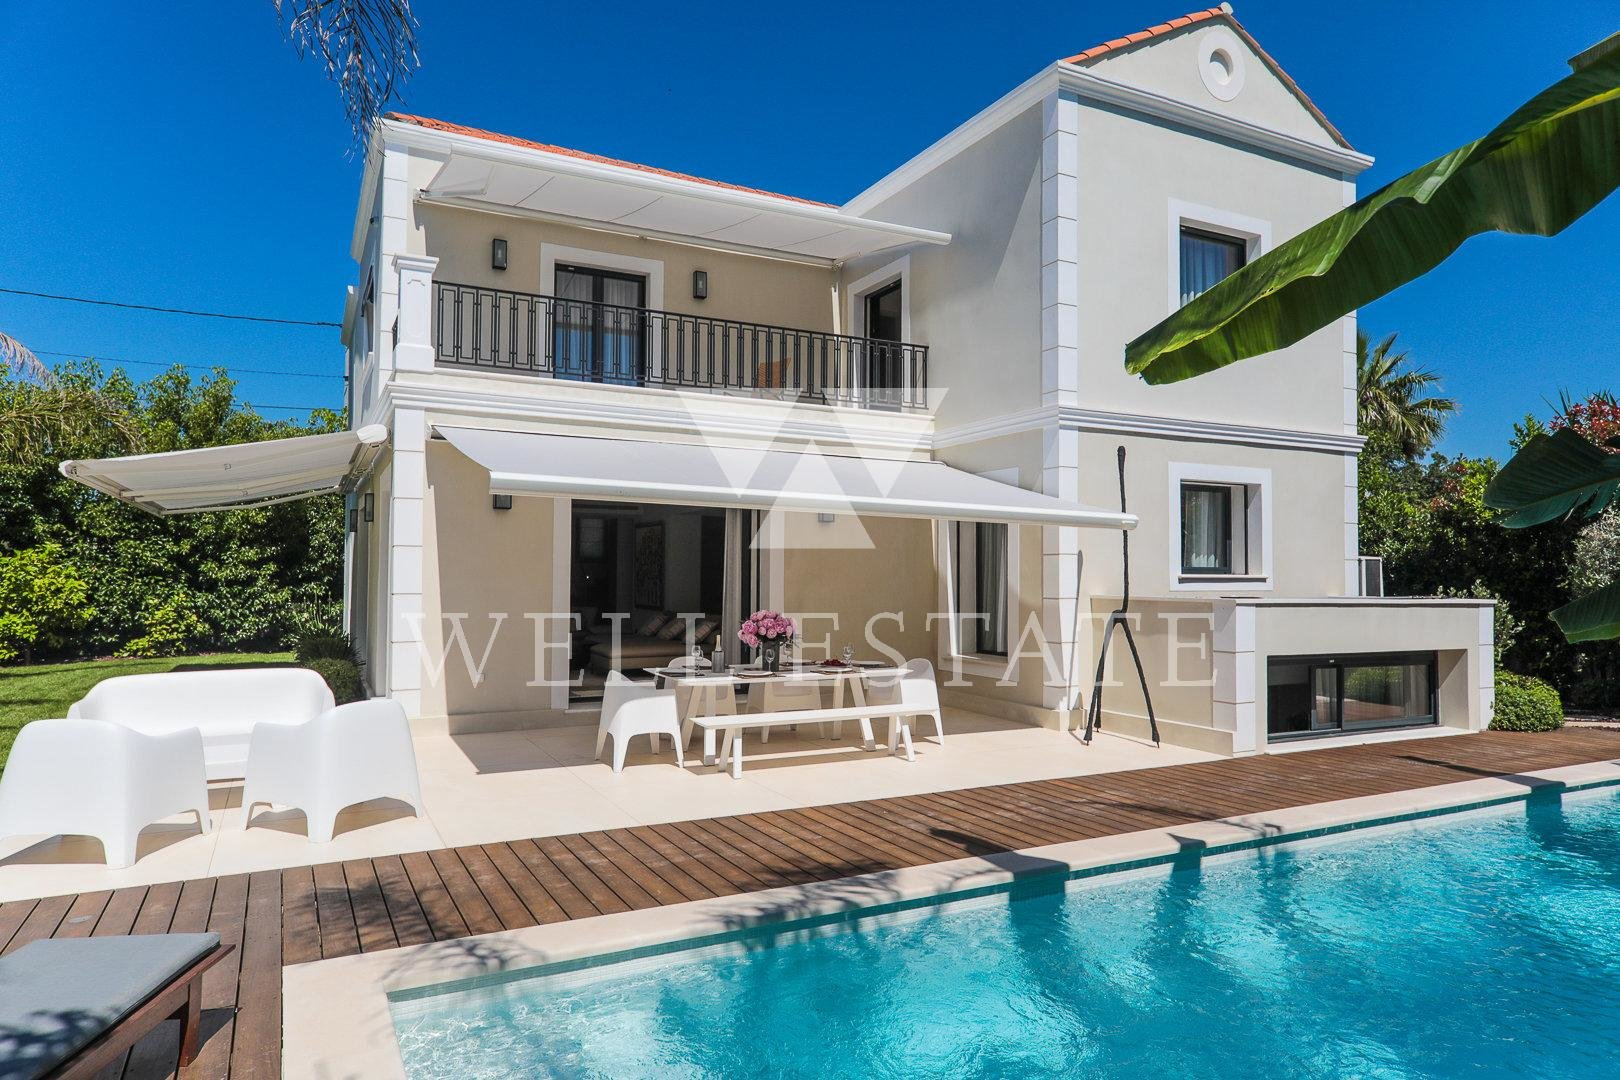 CAP D'ANTIBES SEASONAL RENT CONTEMPORARY VILLA 300M2 HEATED SWIMMING POOL